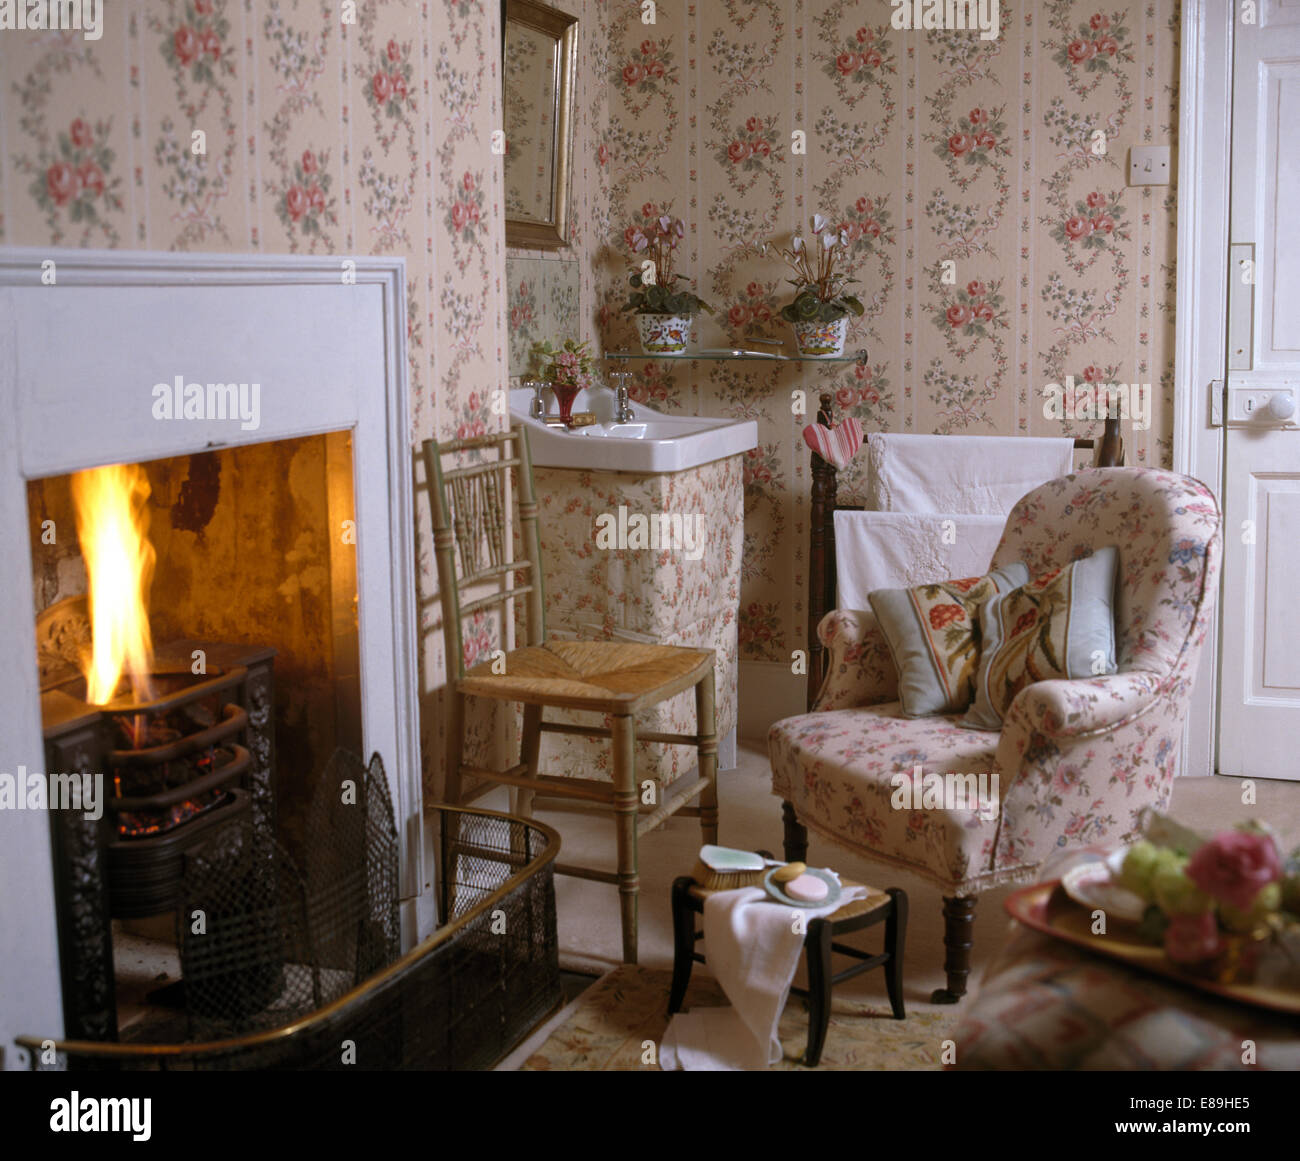 Rose Sprigged Wallpaper And Armchair In Country Bedroom